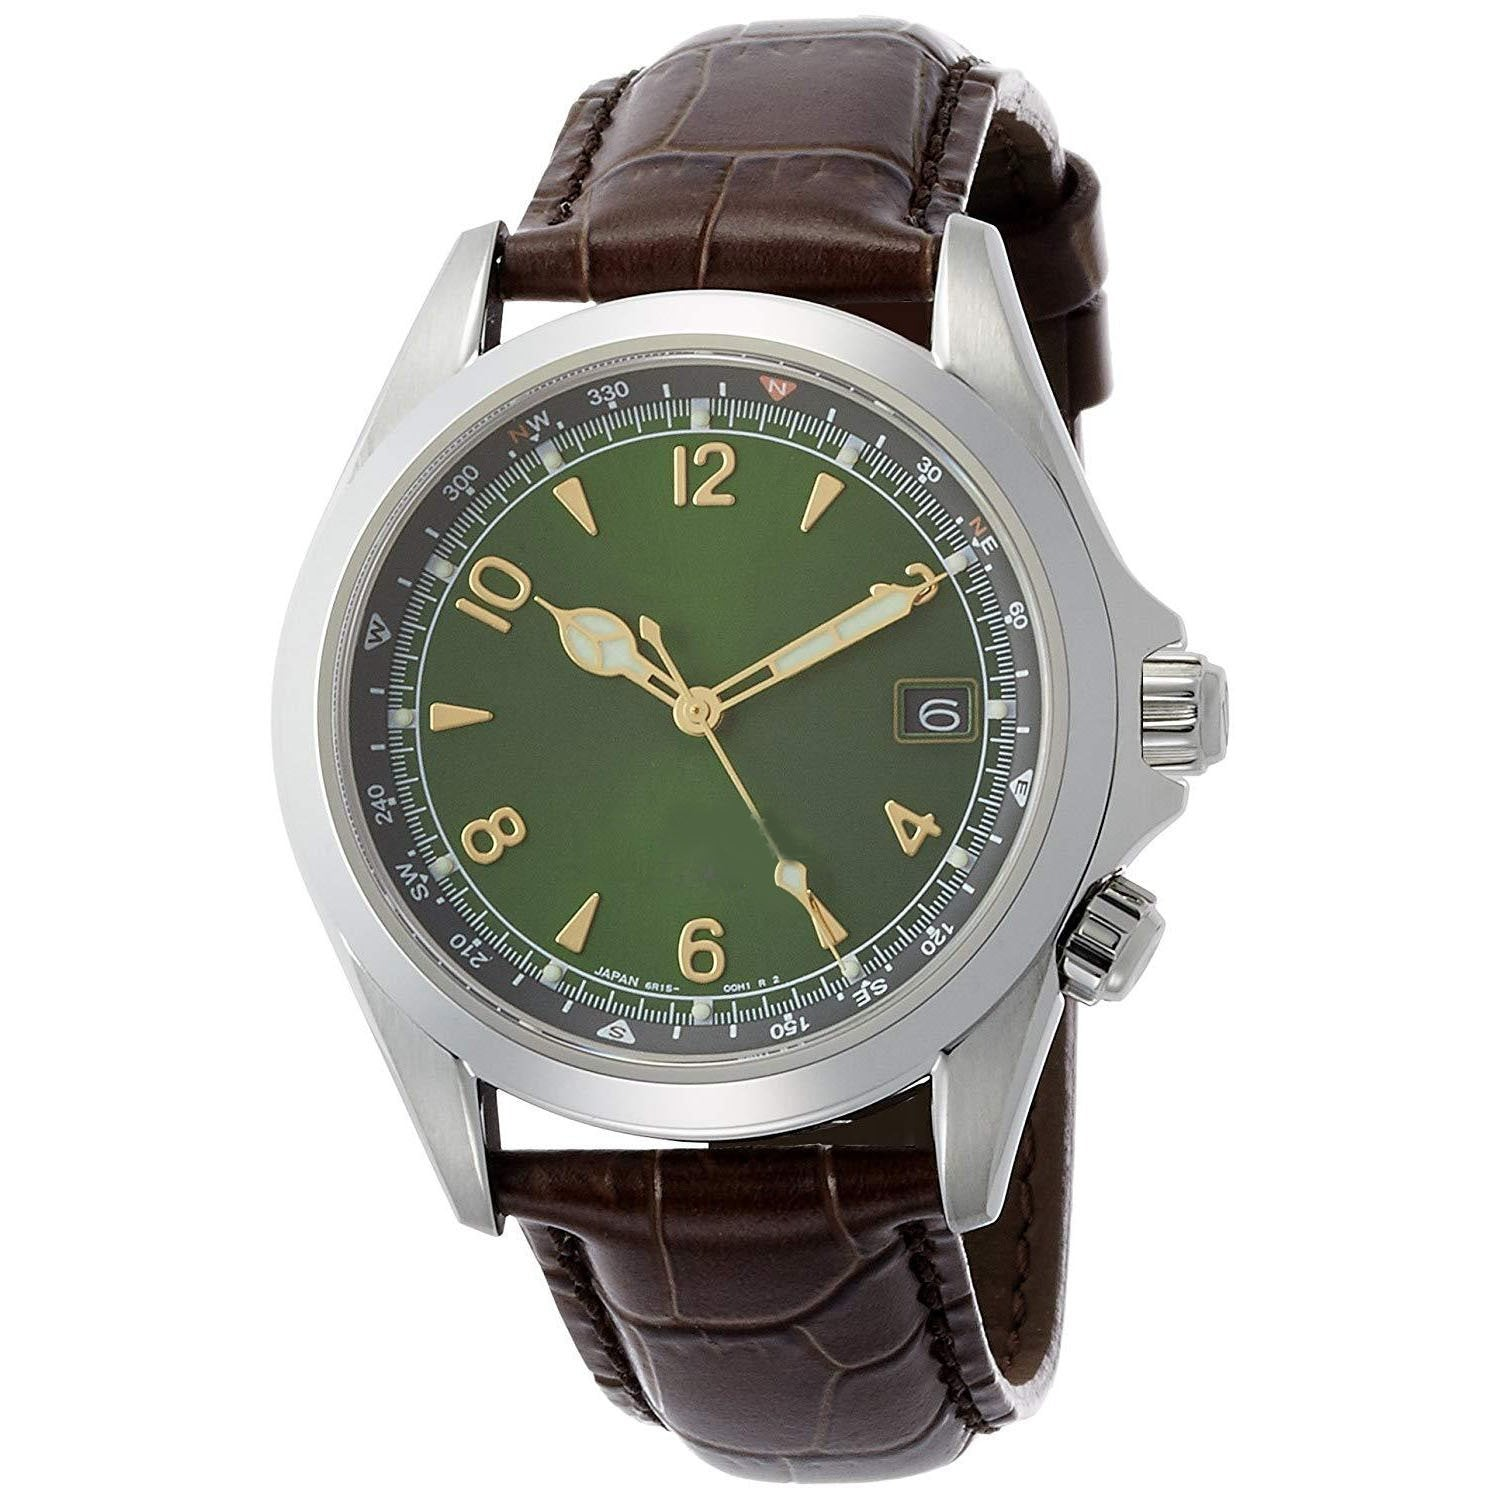 Automatic Stainless Steel and Leather Casual Watch